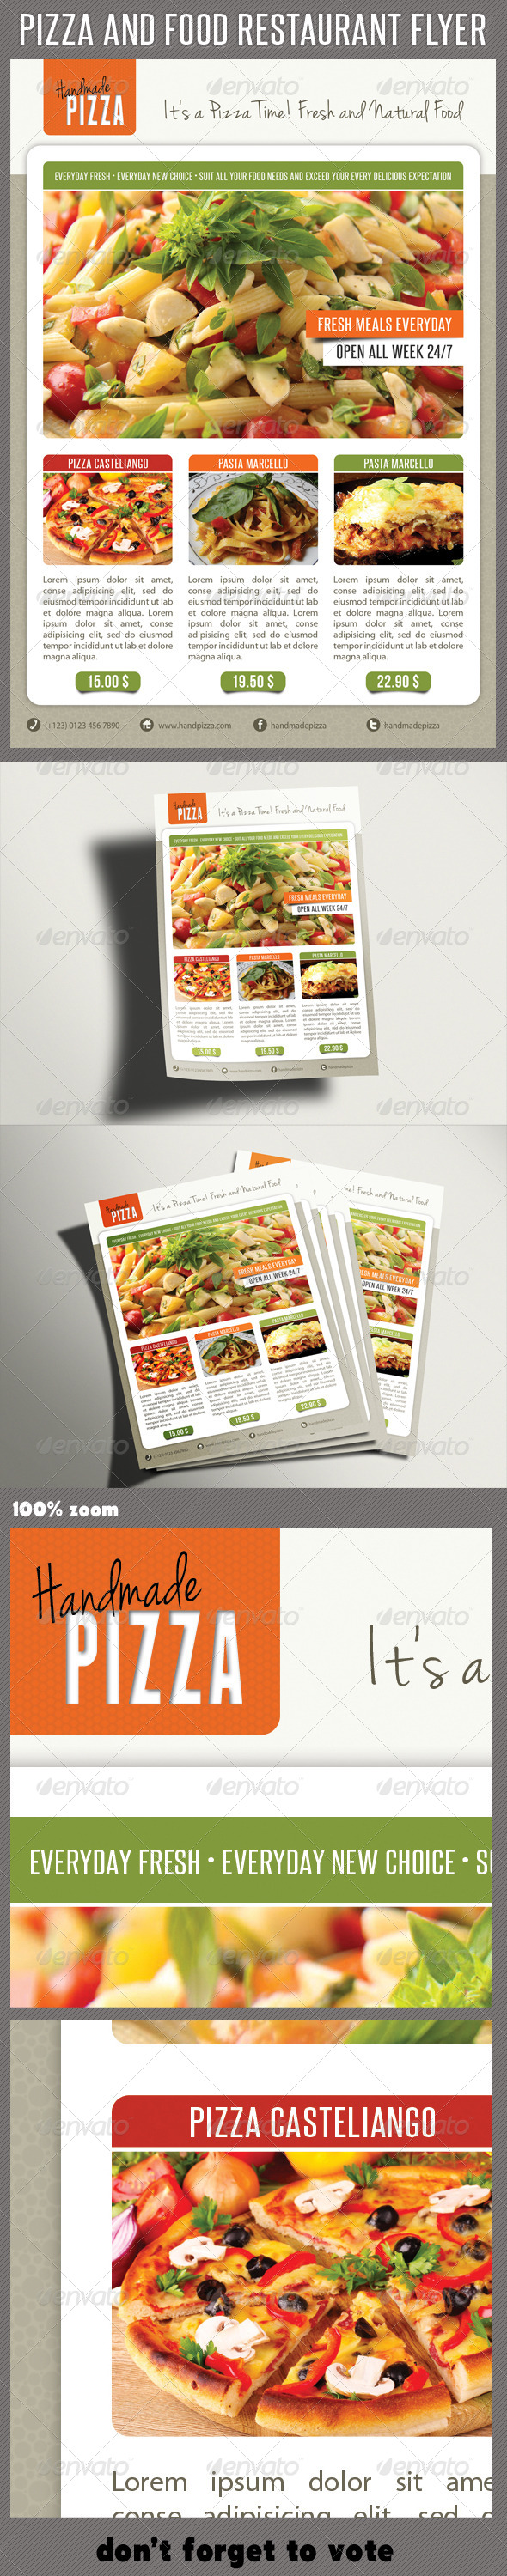 Food And Pizza Menu Flyer 05 - Restaurant Flyers